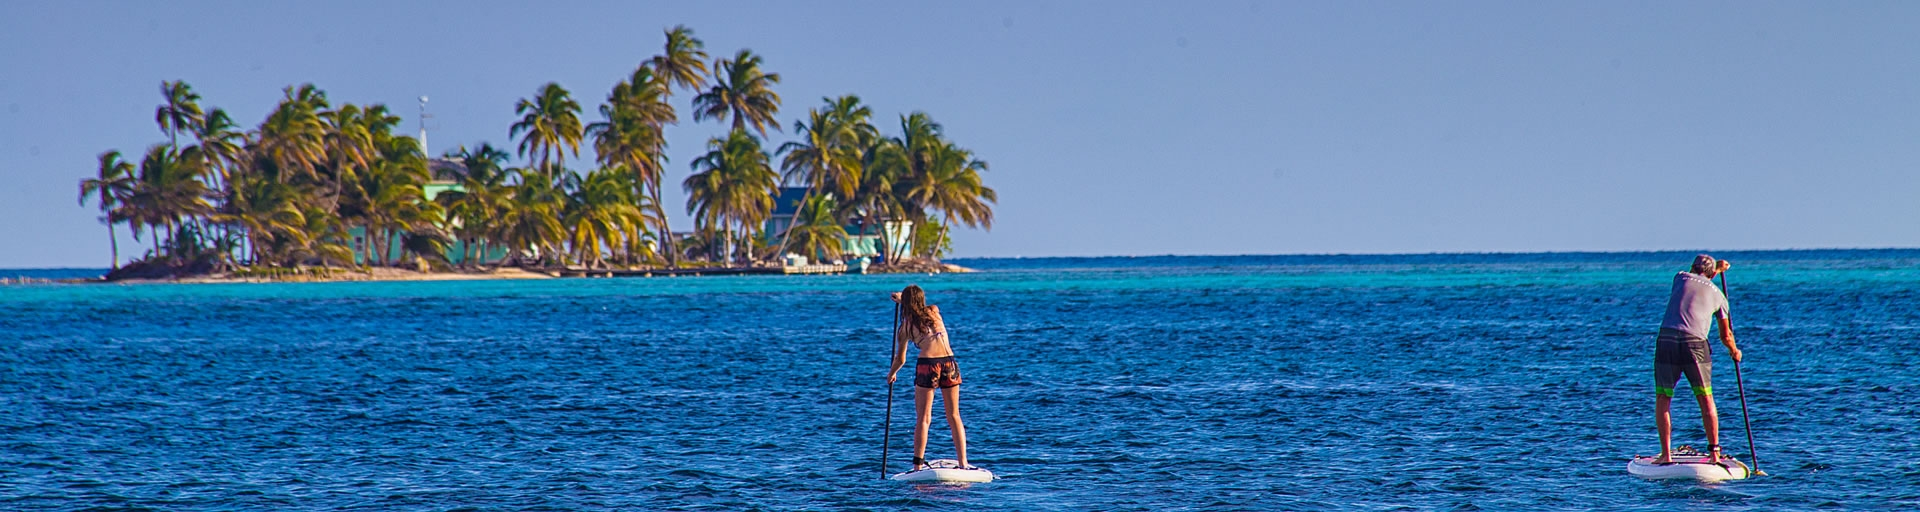 Paddleboard out to sea